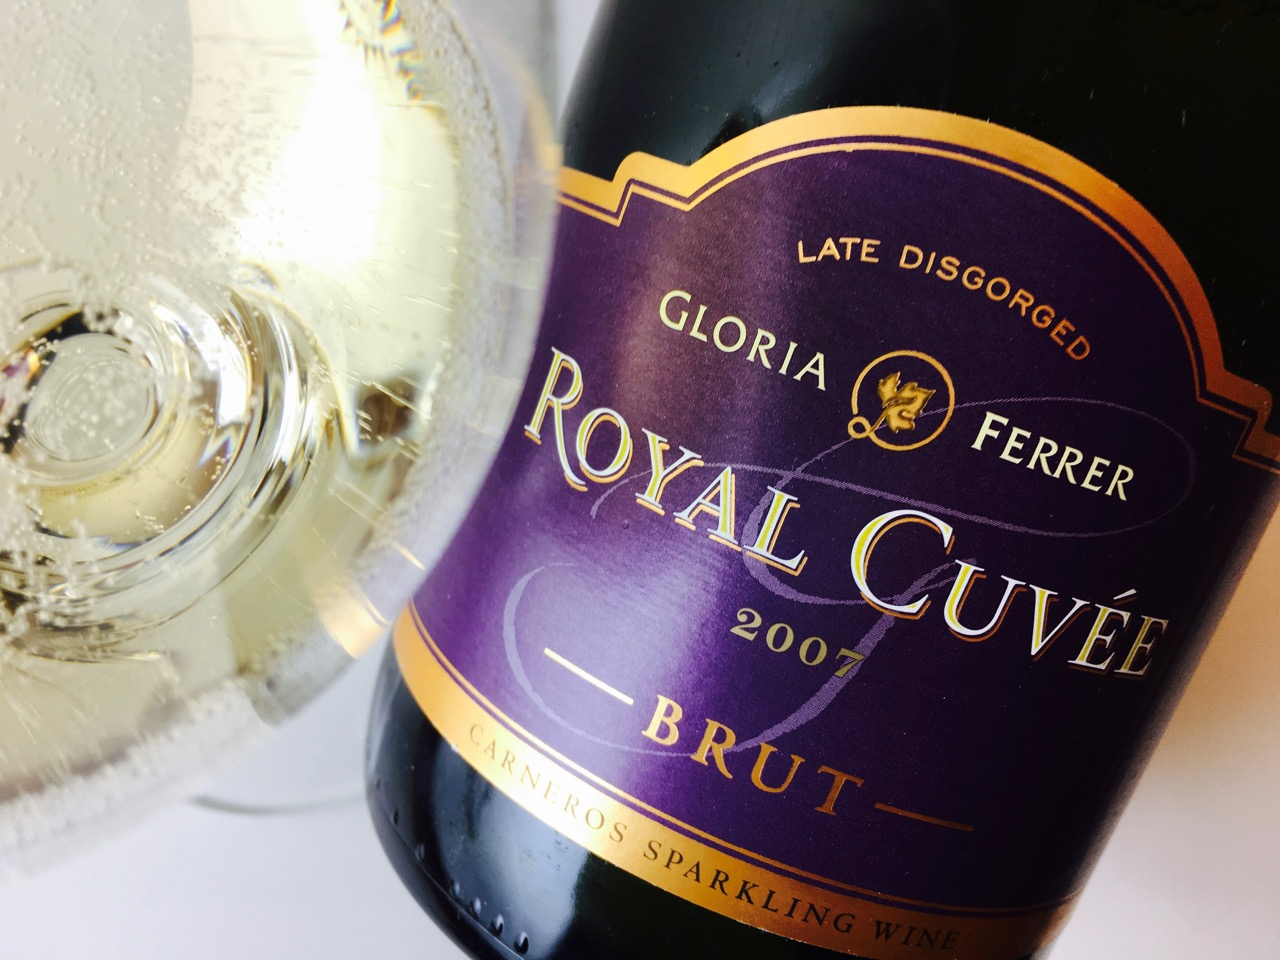 2007 Gloria Ferrer Royal Cuvée Brut Carneros